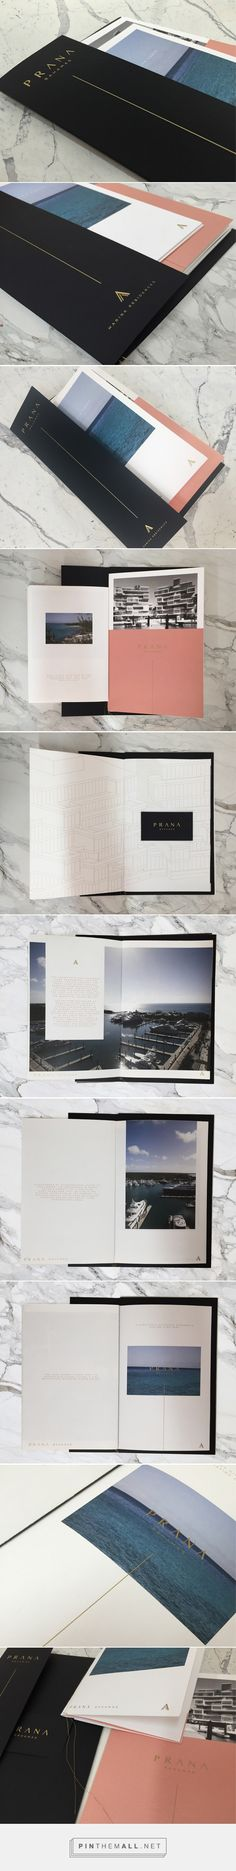 Prana Building Branding on Behance